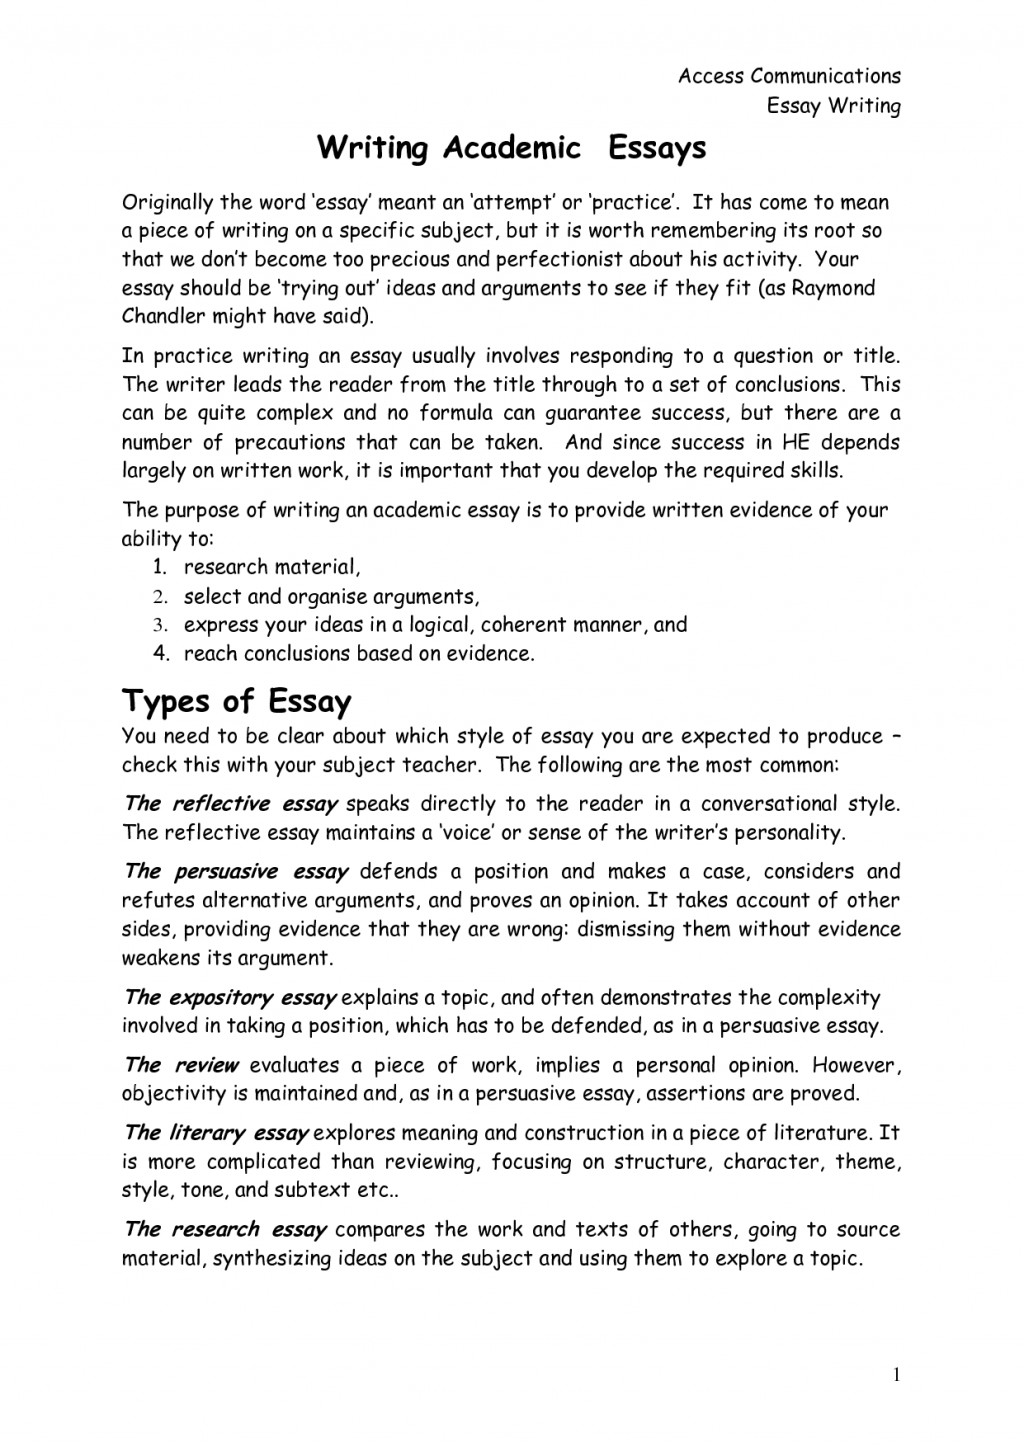 016 Reflective Essay On Academic Writings Beautiful Examples About Life Pdf Apa Large